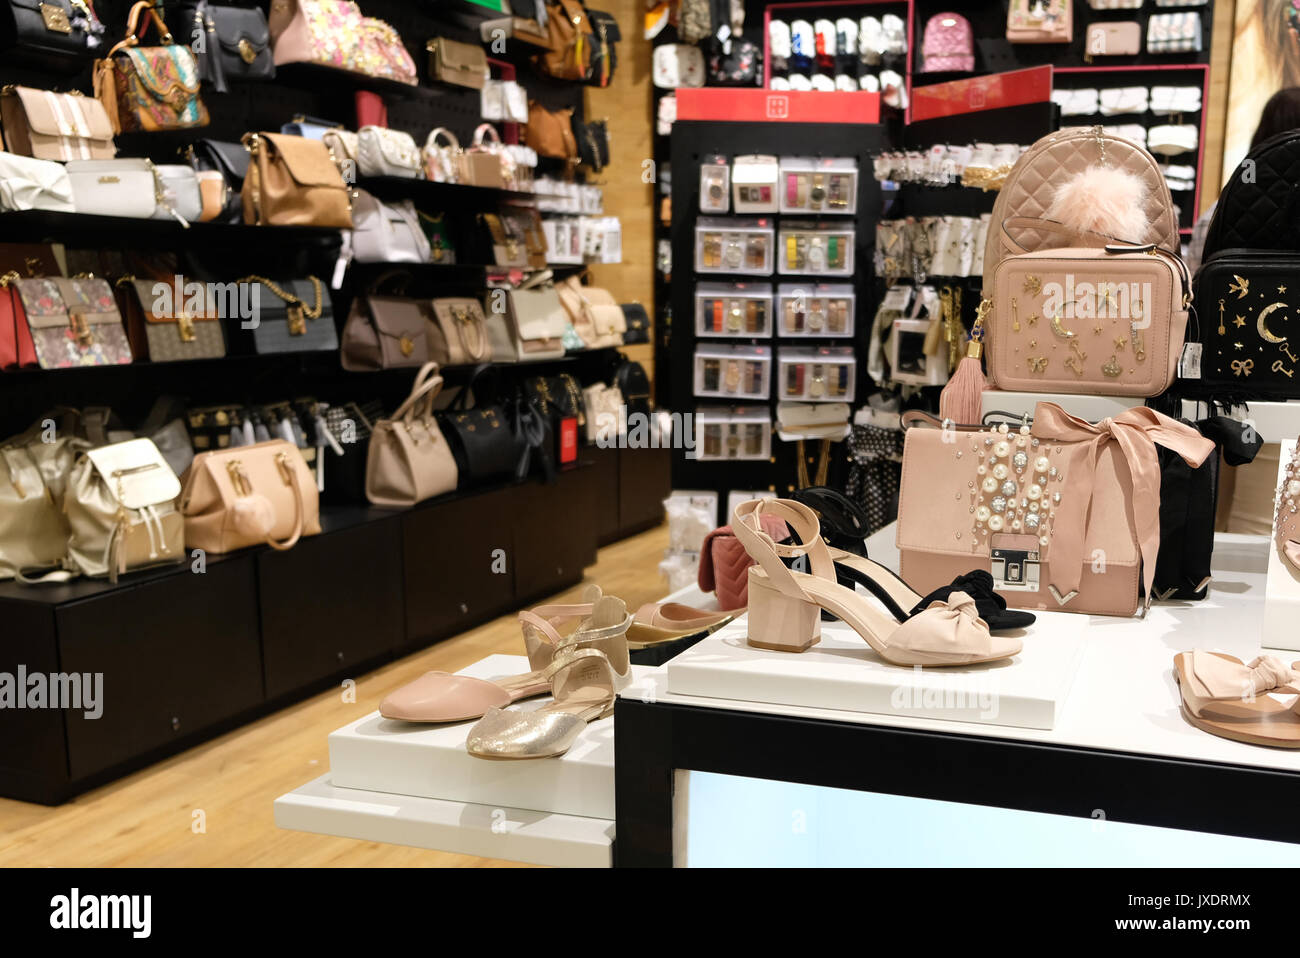 Women's shoes and accessories retail store - Stock Image